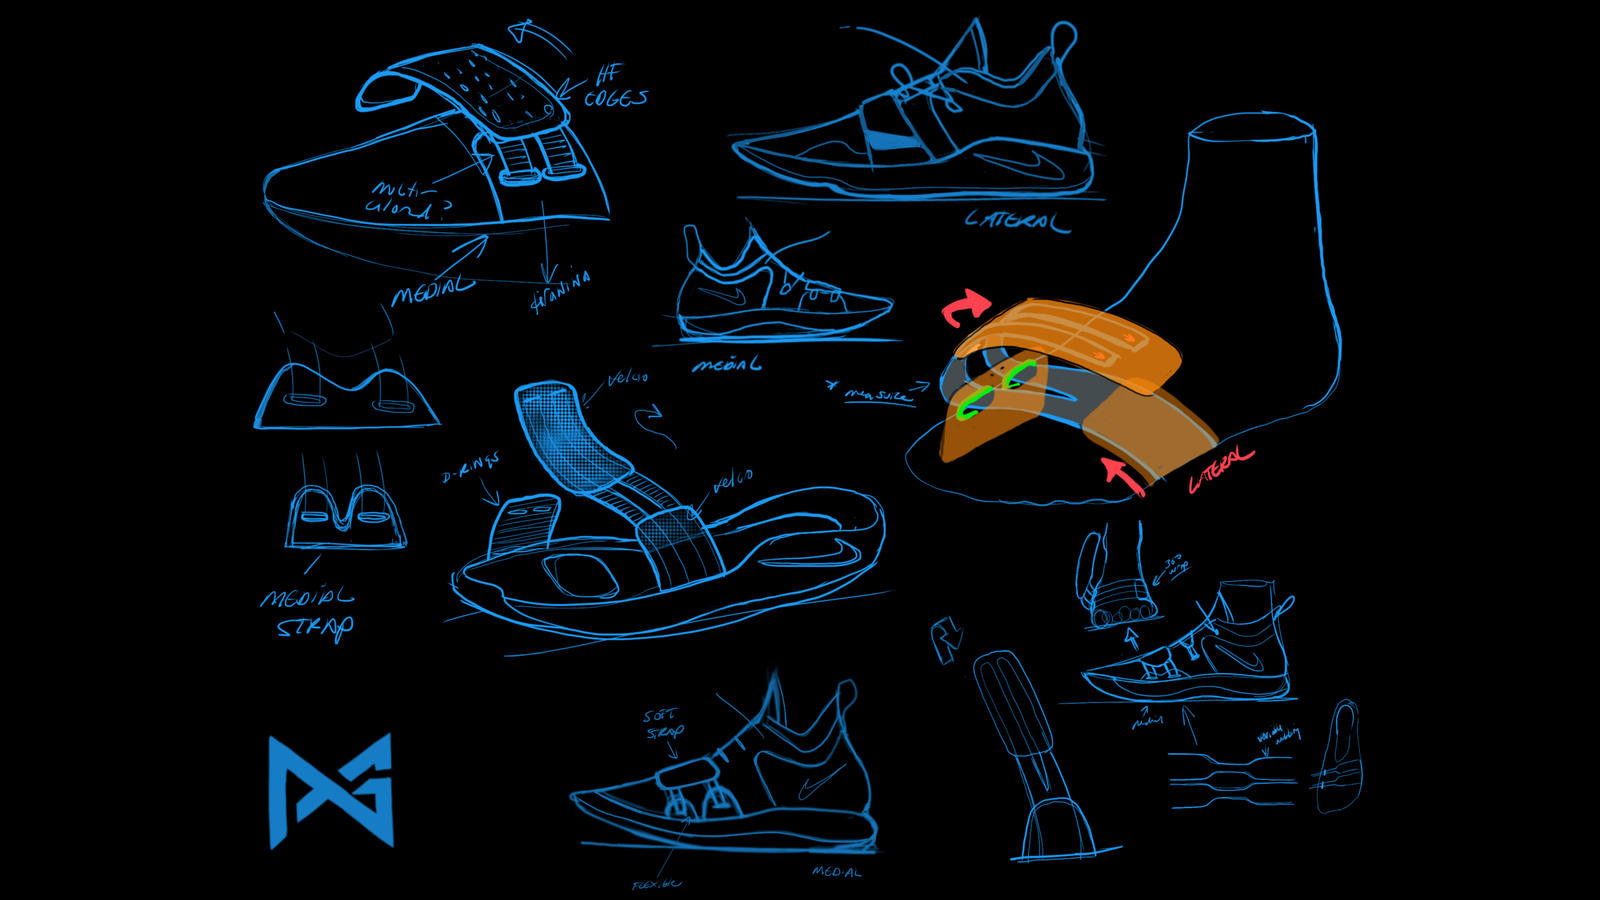 Paul george pg 2 5 sketch page nike news hd 1600